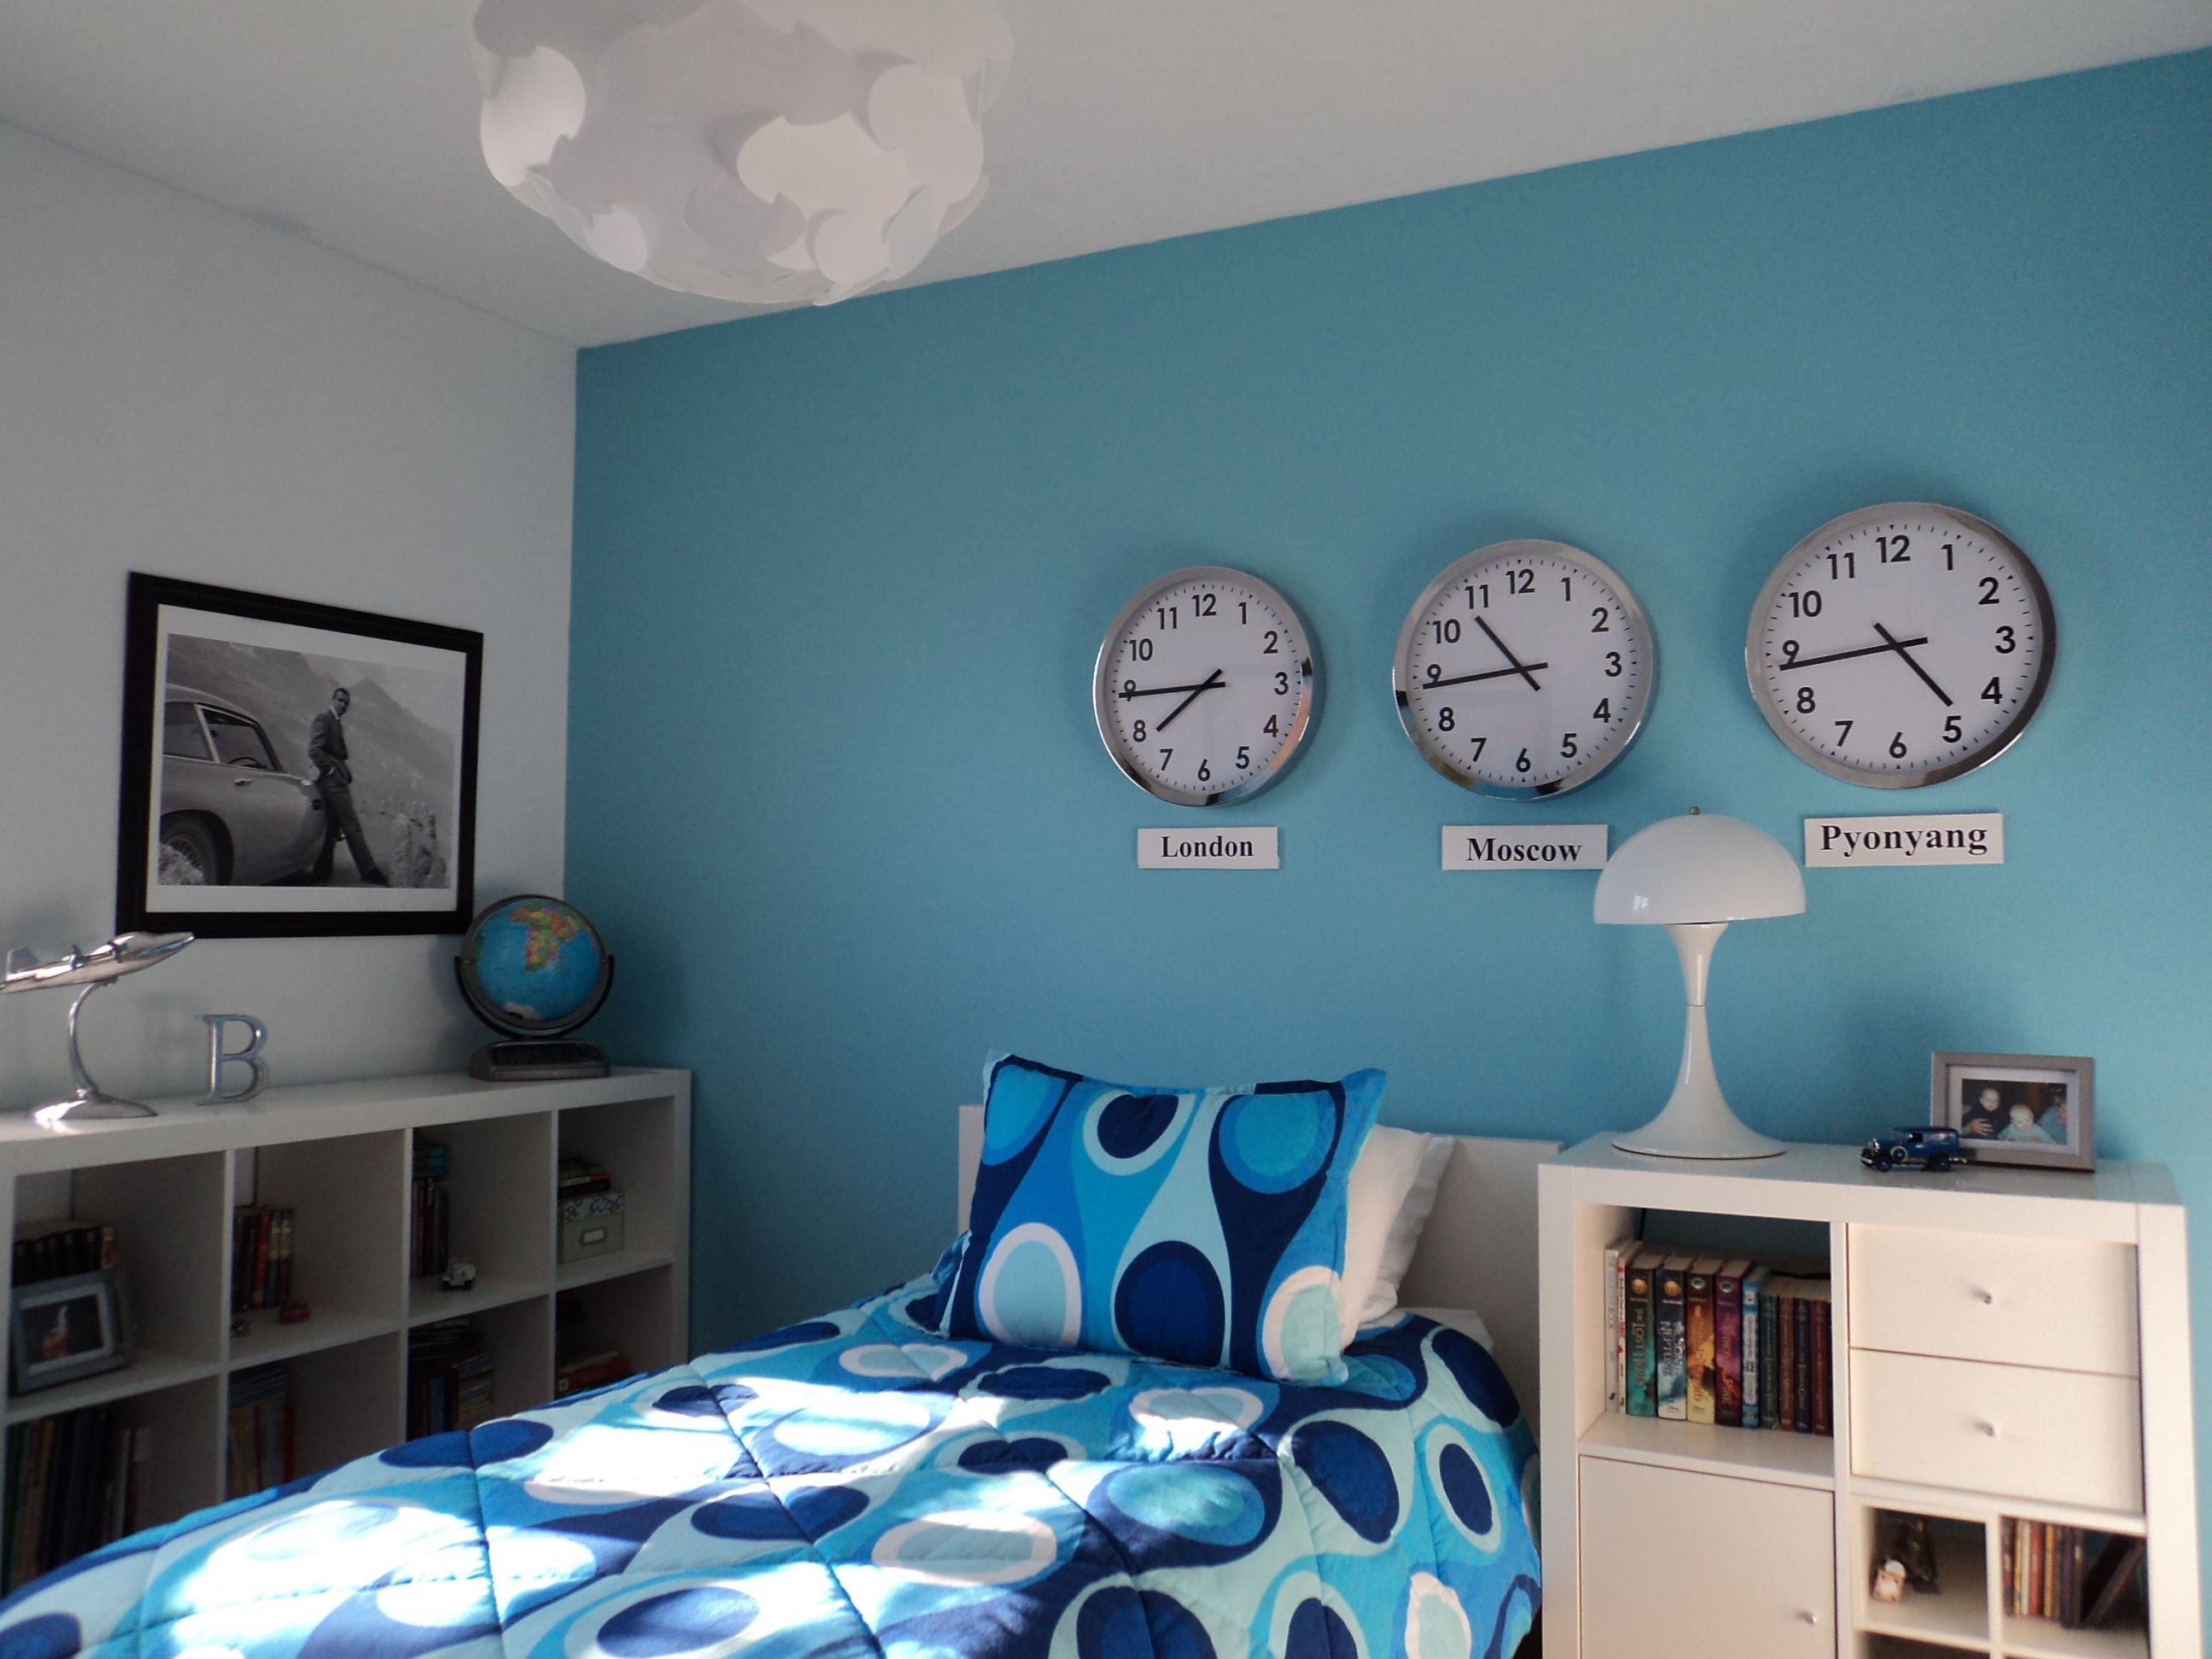 Bedroom decoration with blue walls - Blue Themed Boys Bedroom Ideas With White And Ligt Blue Walls Featuring White Bed With Blue